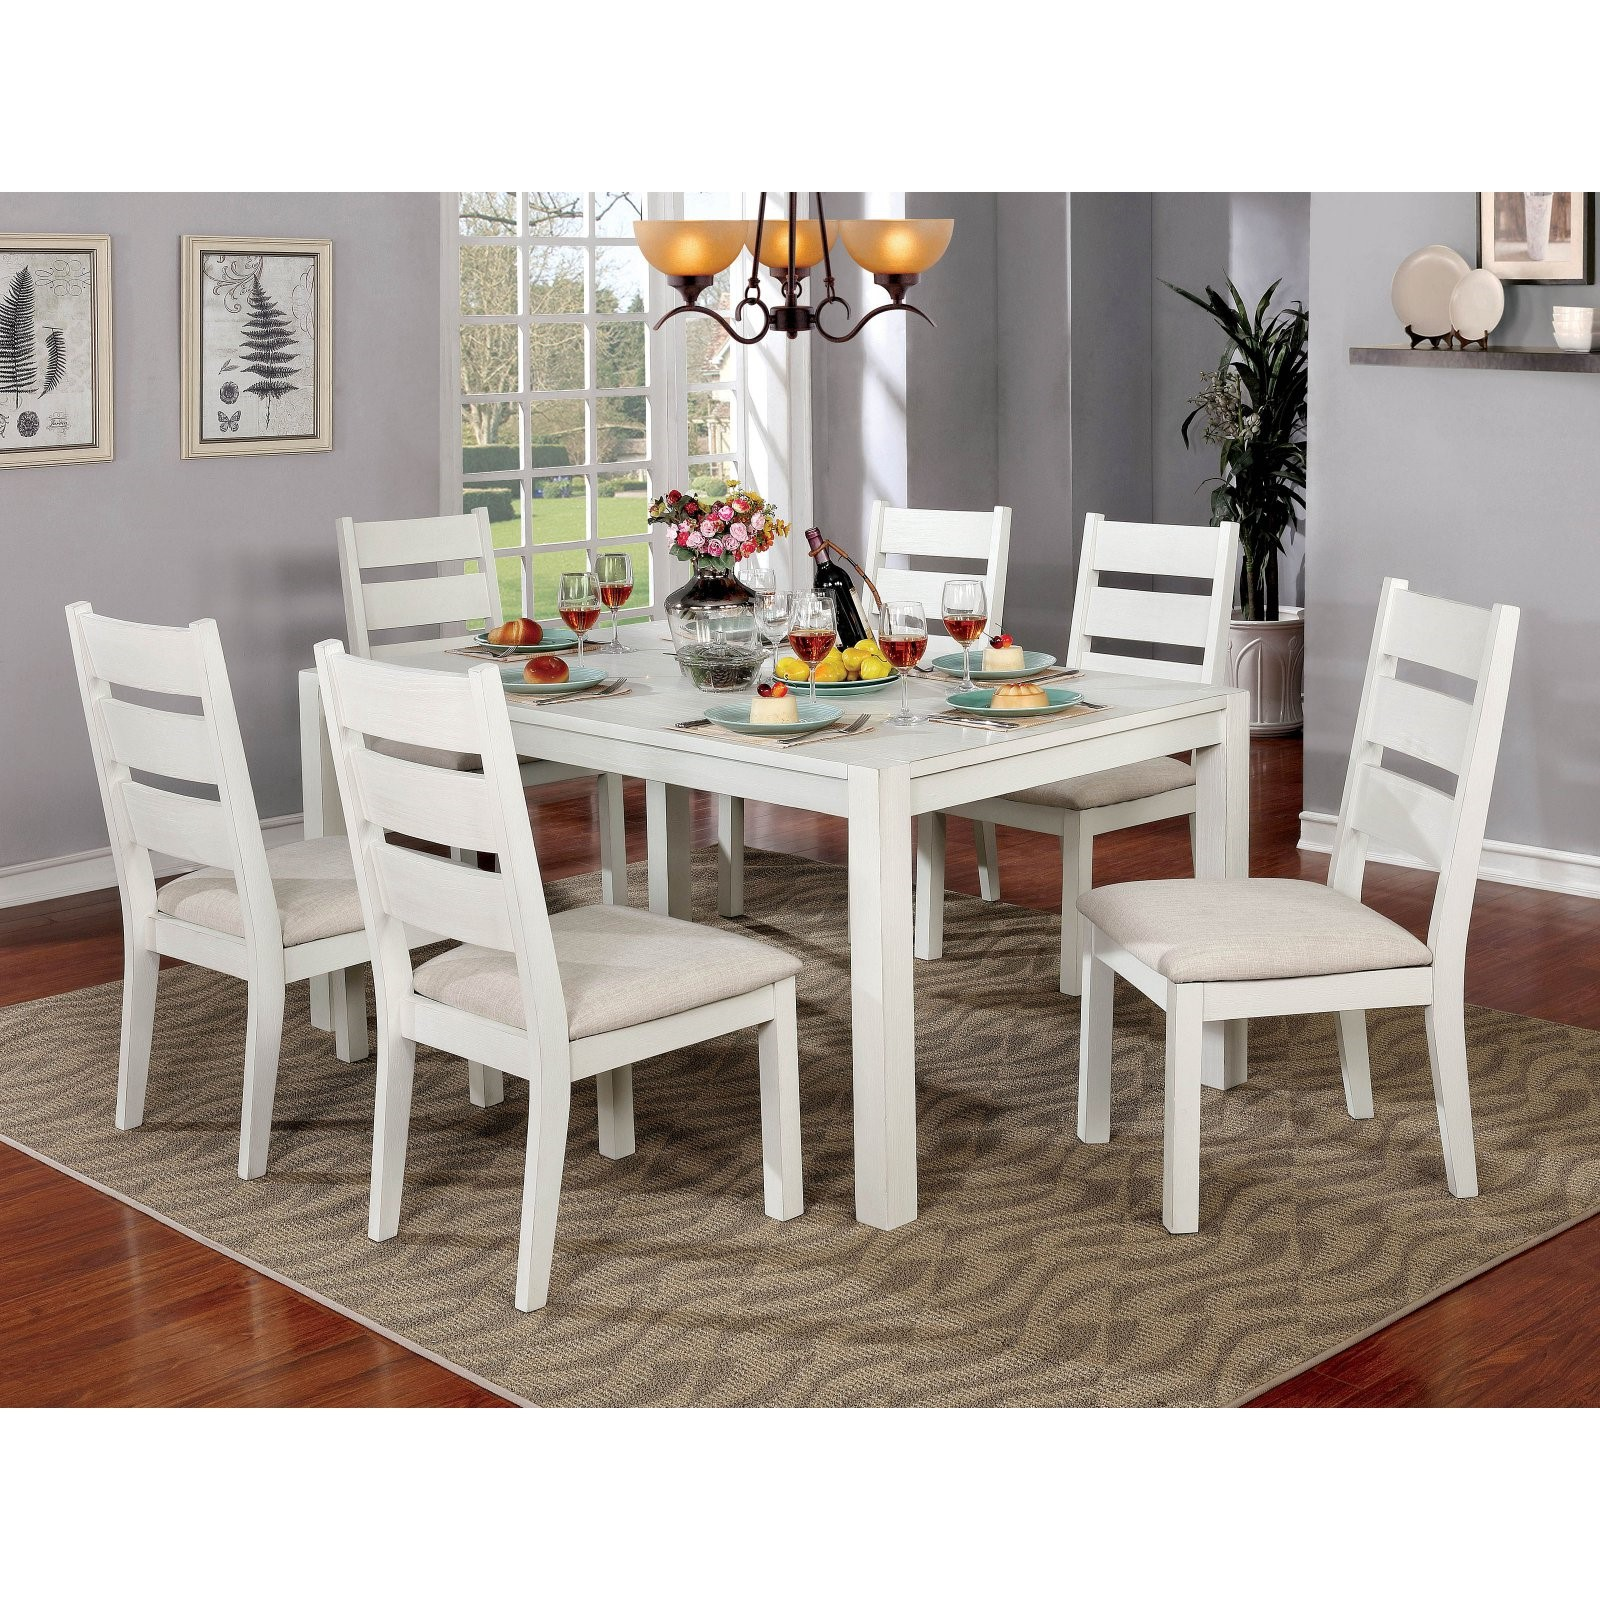 Furniture of America Galveston 7 Piece Rustic Dining Table Set by Enitial Lab